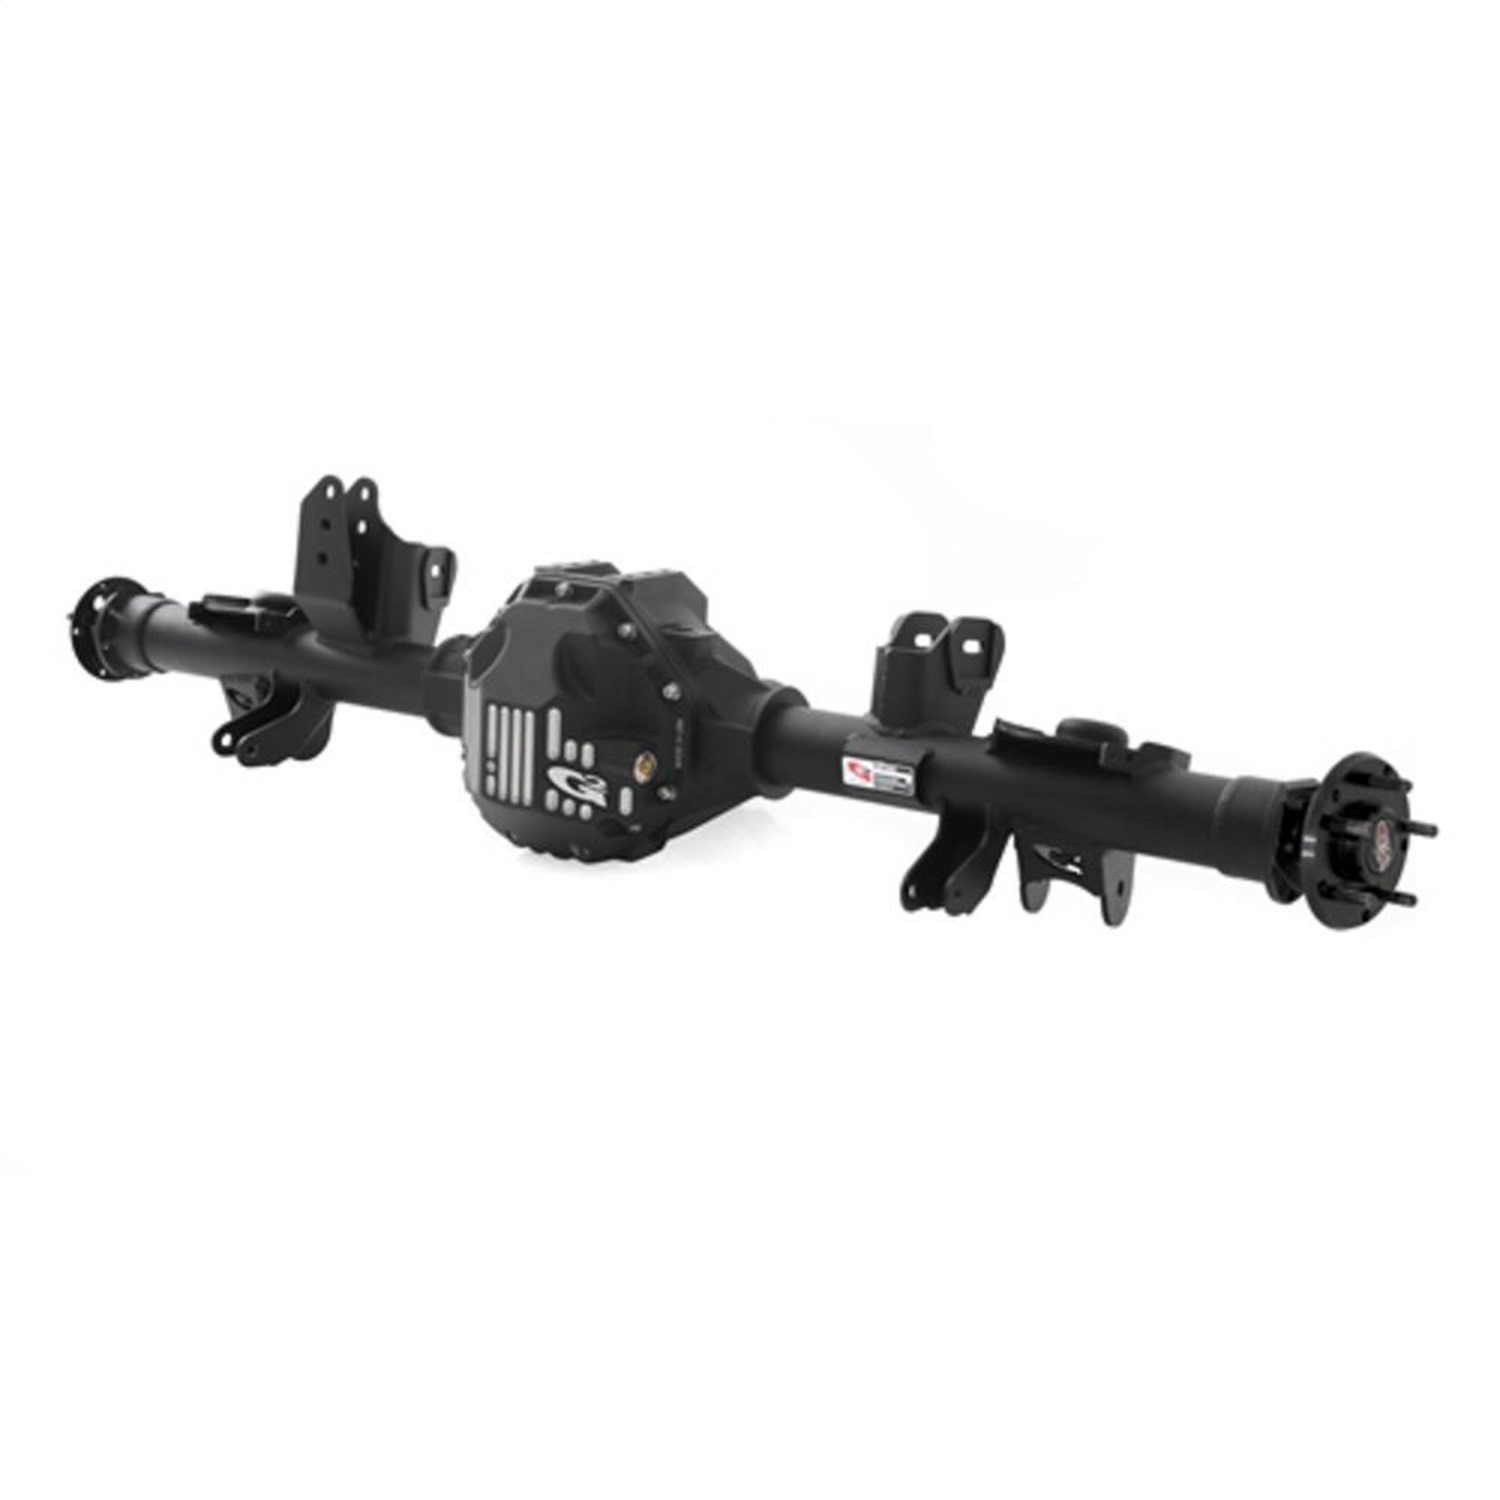 G2 Axle and Gear C4TSR410EC0D CORE 44 Complete Axle Assembly